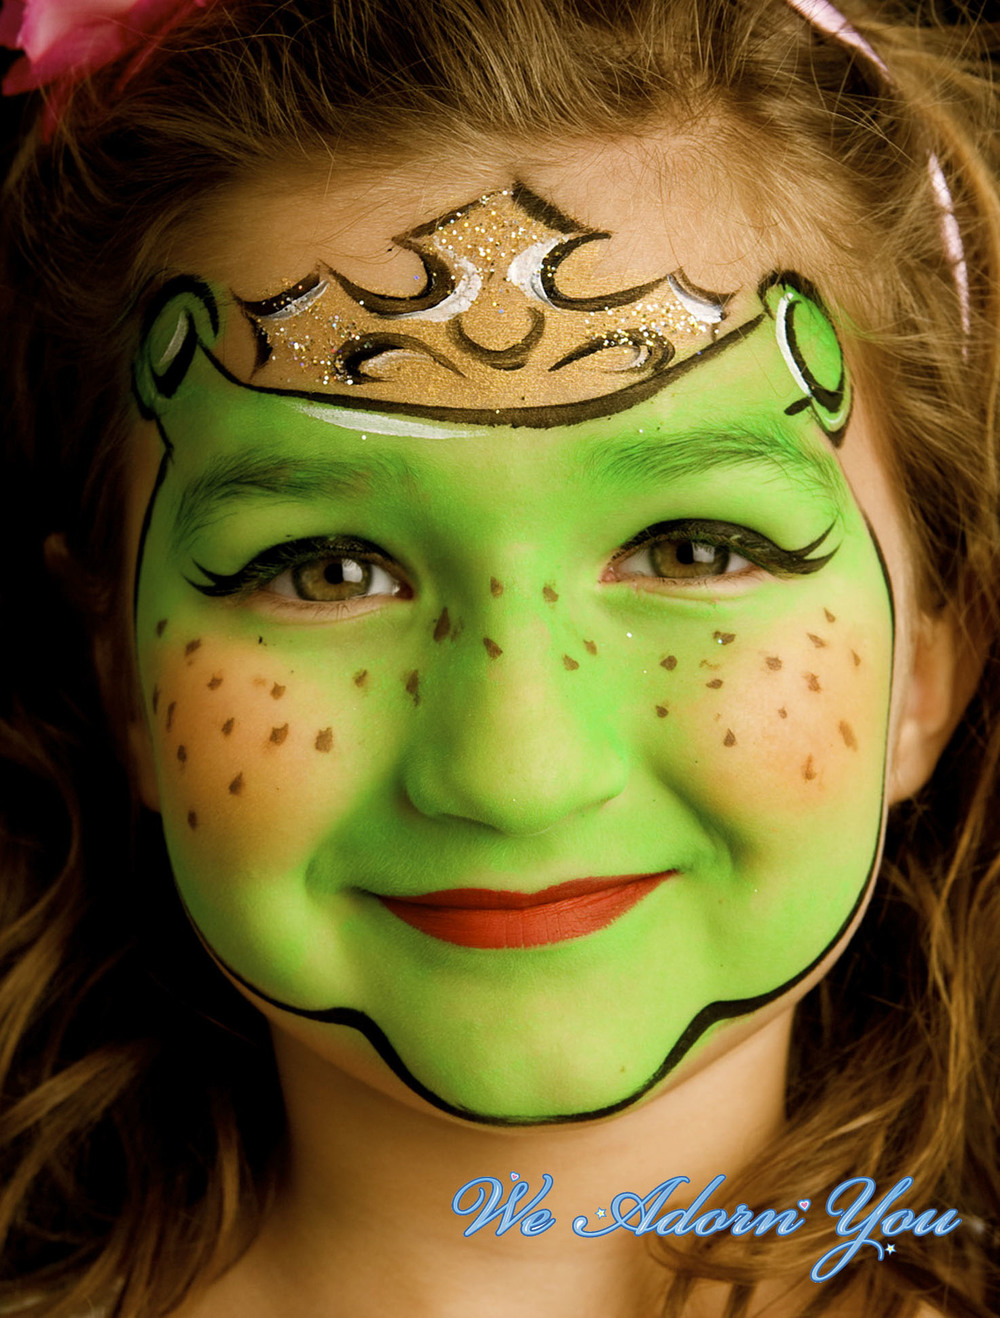 Face Painting Shrek Girl- We Adorn You.jpg